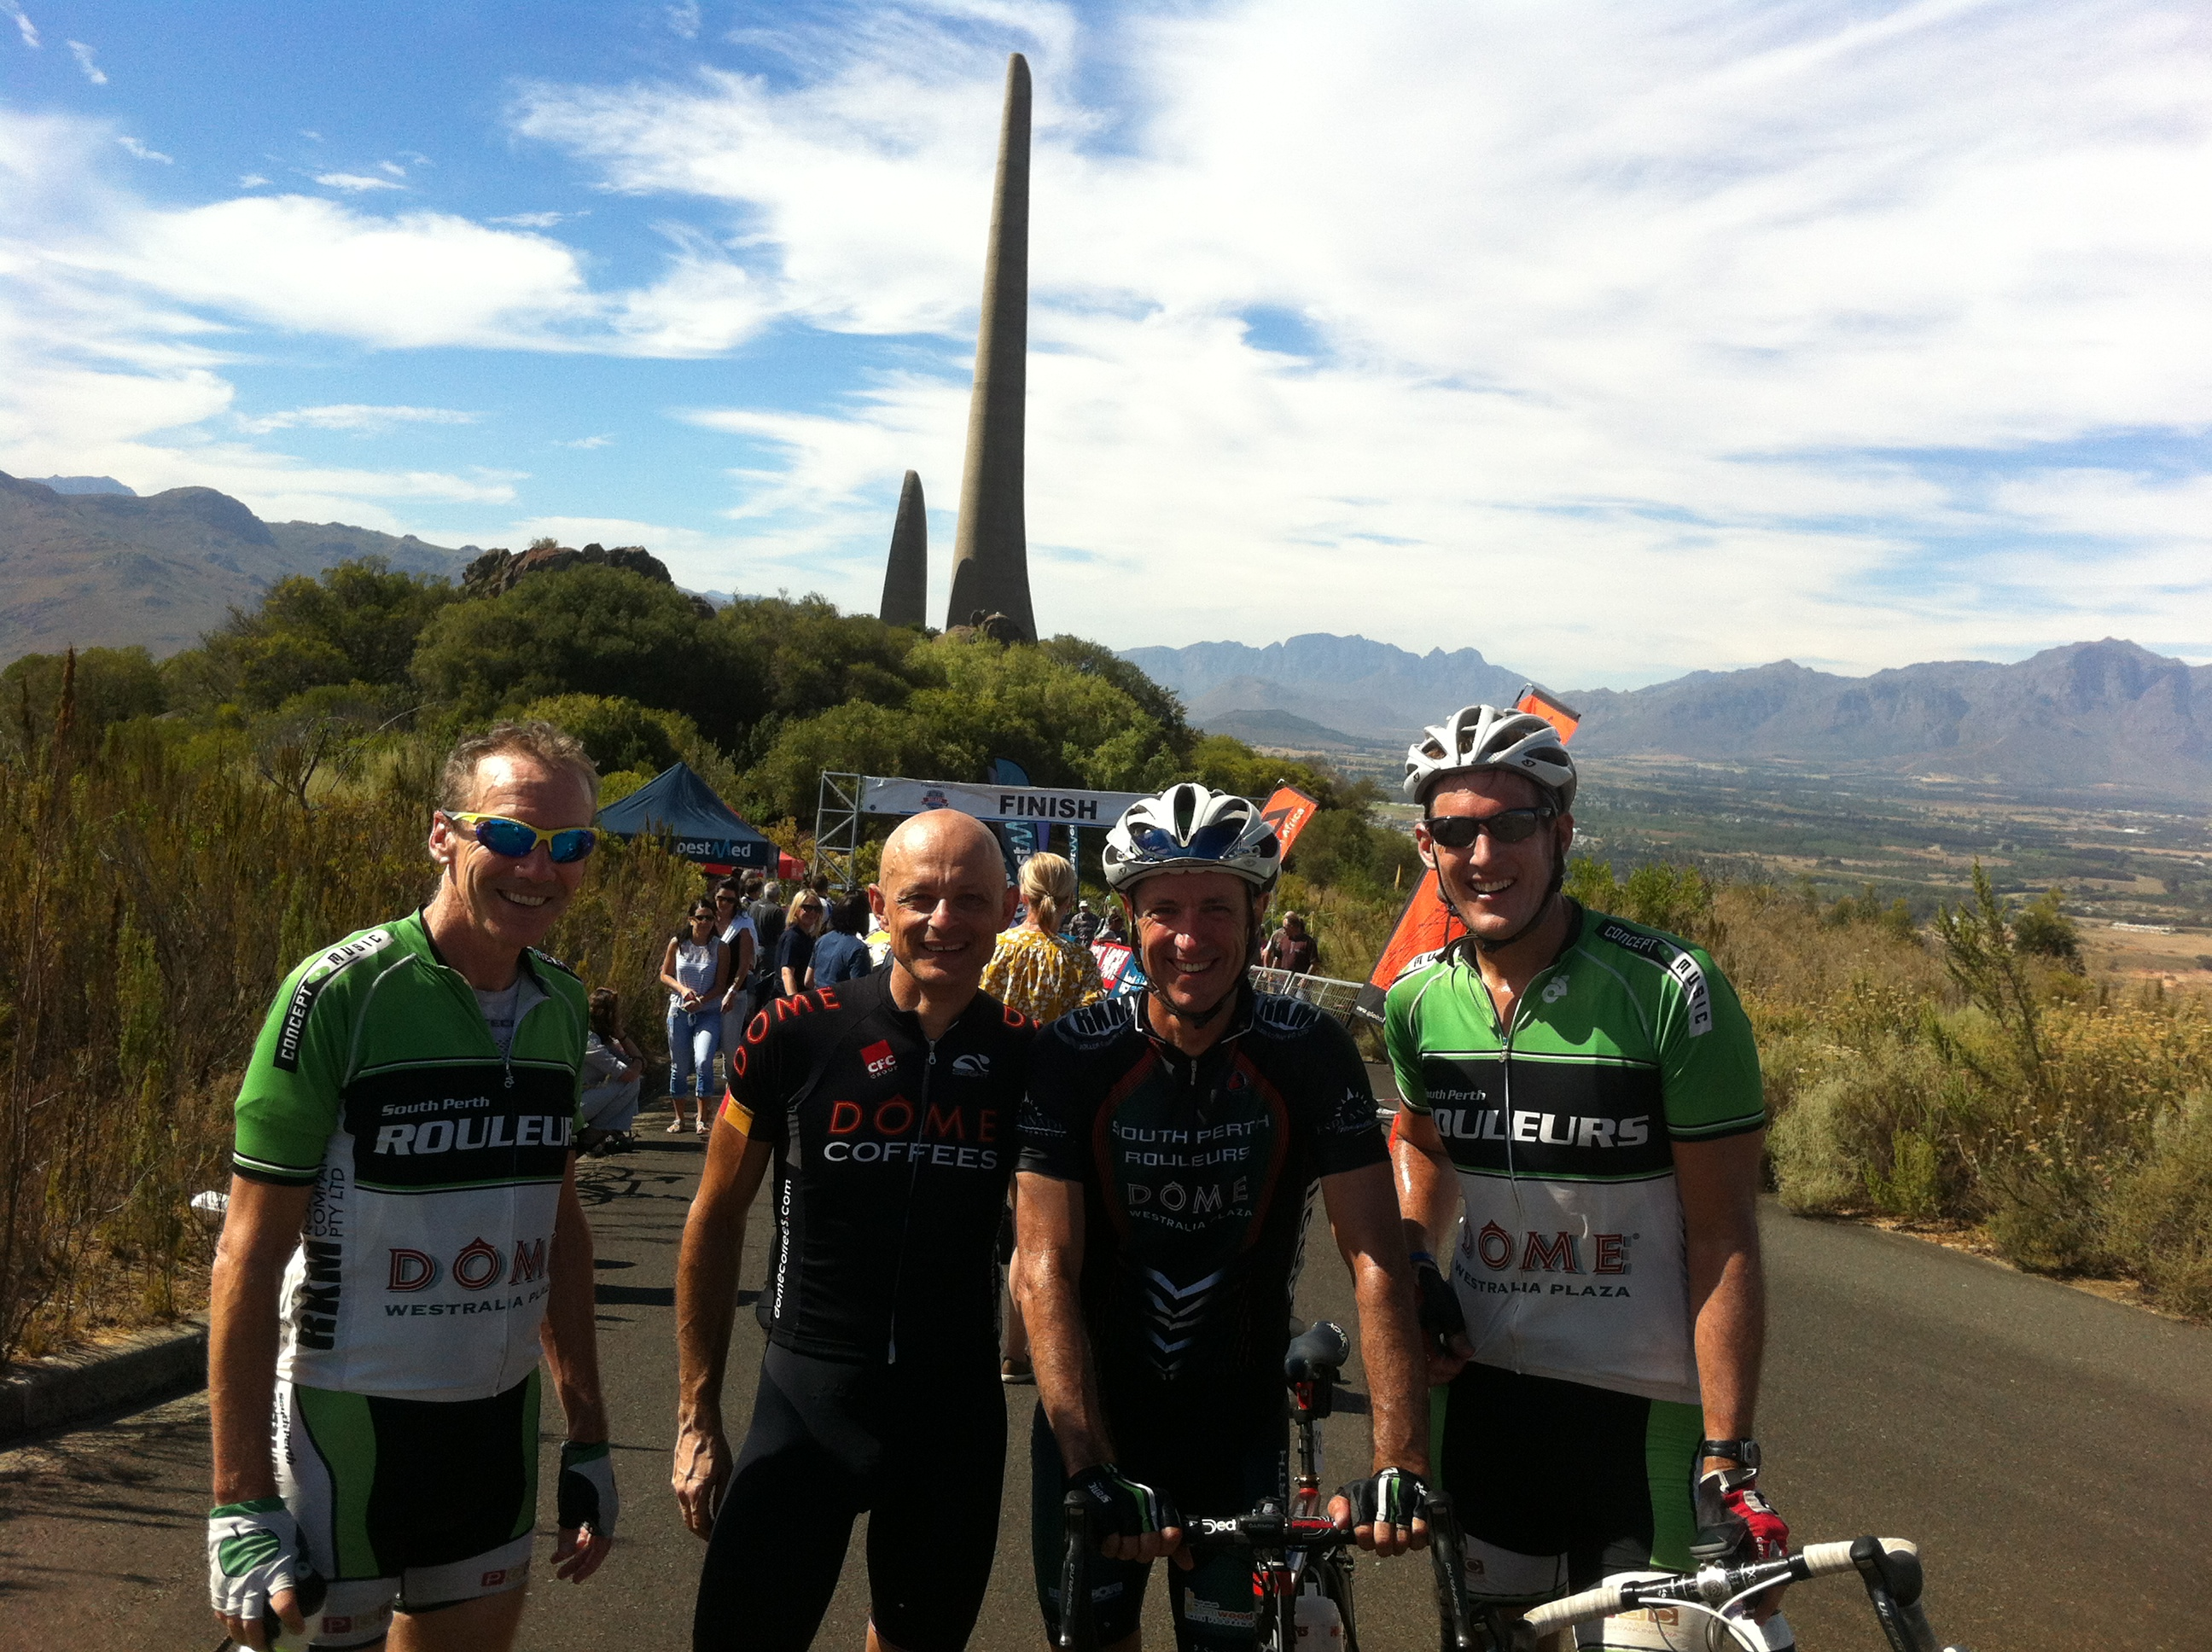 Finishing line, Day 5, Taarl Monument, Paarl